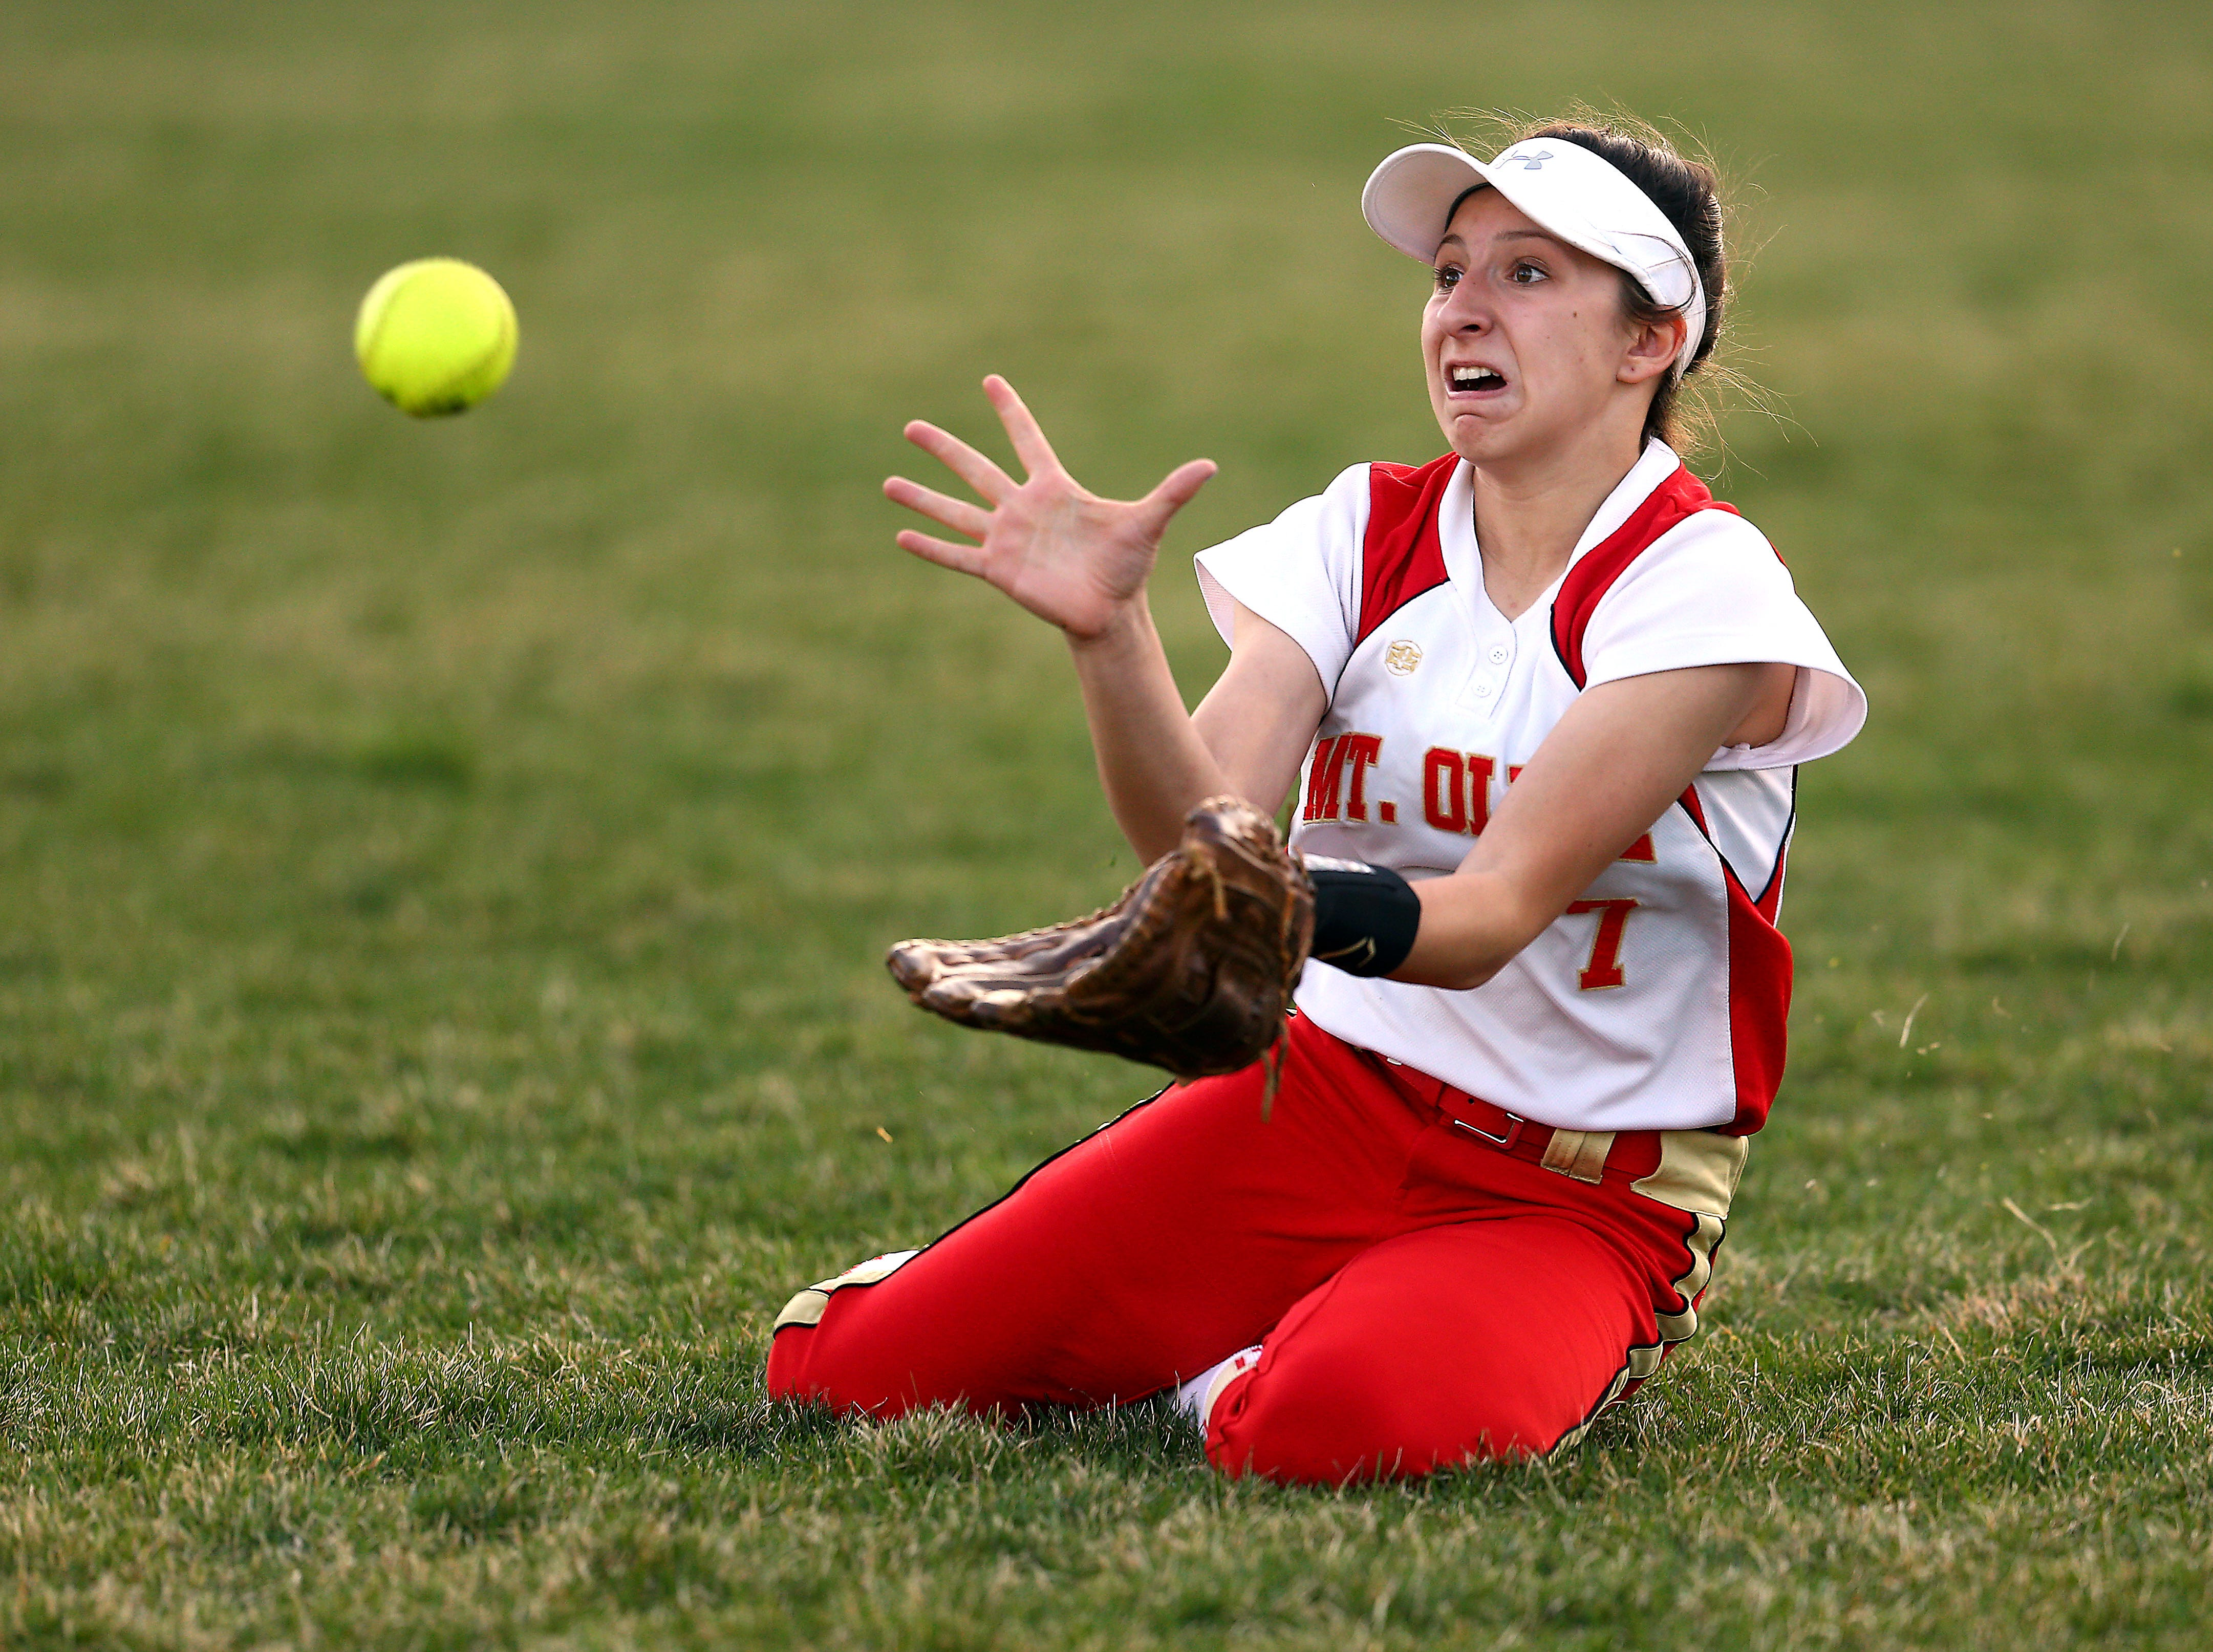 Mount Olive's Alyssa Segnello makes a diving catch vs. Hanover Park in the Morris County Tournament softball final.  May 9, 2018. Landing, NJ